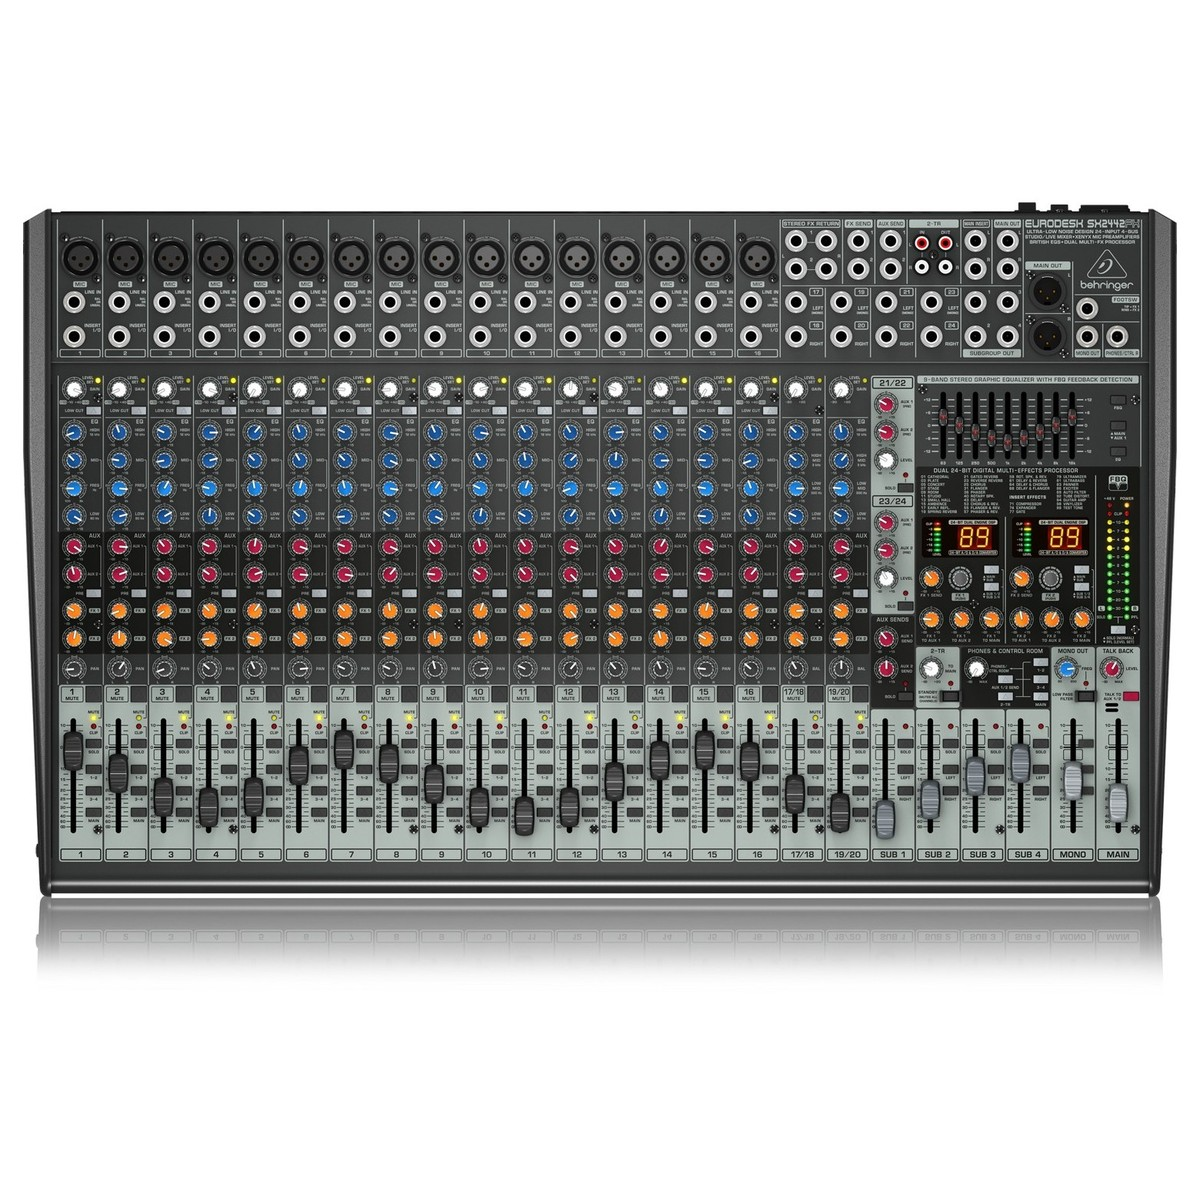 behringer eurodesk sx2442fx 24 channel analog mixer at gear4music. Black Bedroom Furniture Sets. Home Design Ideas